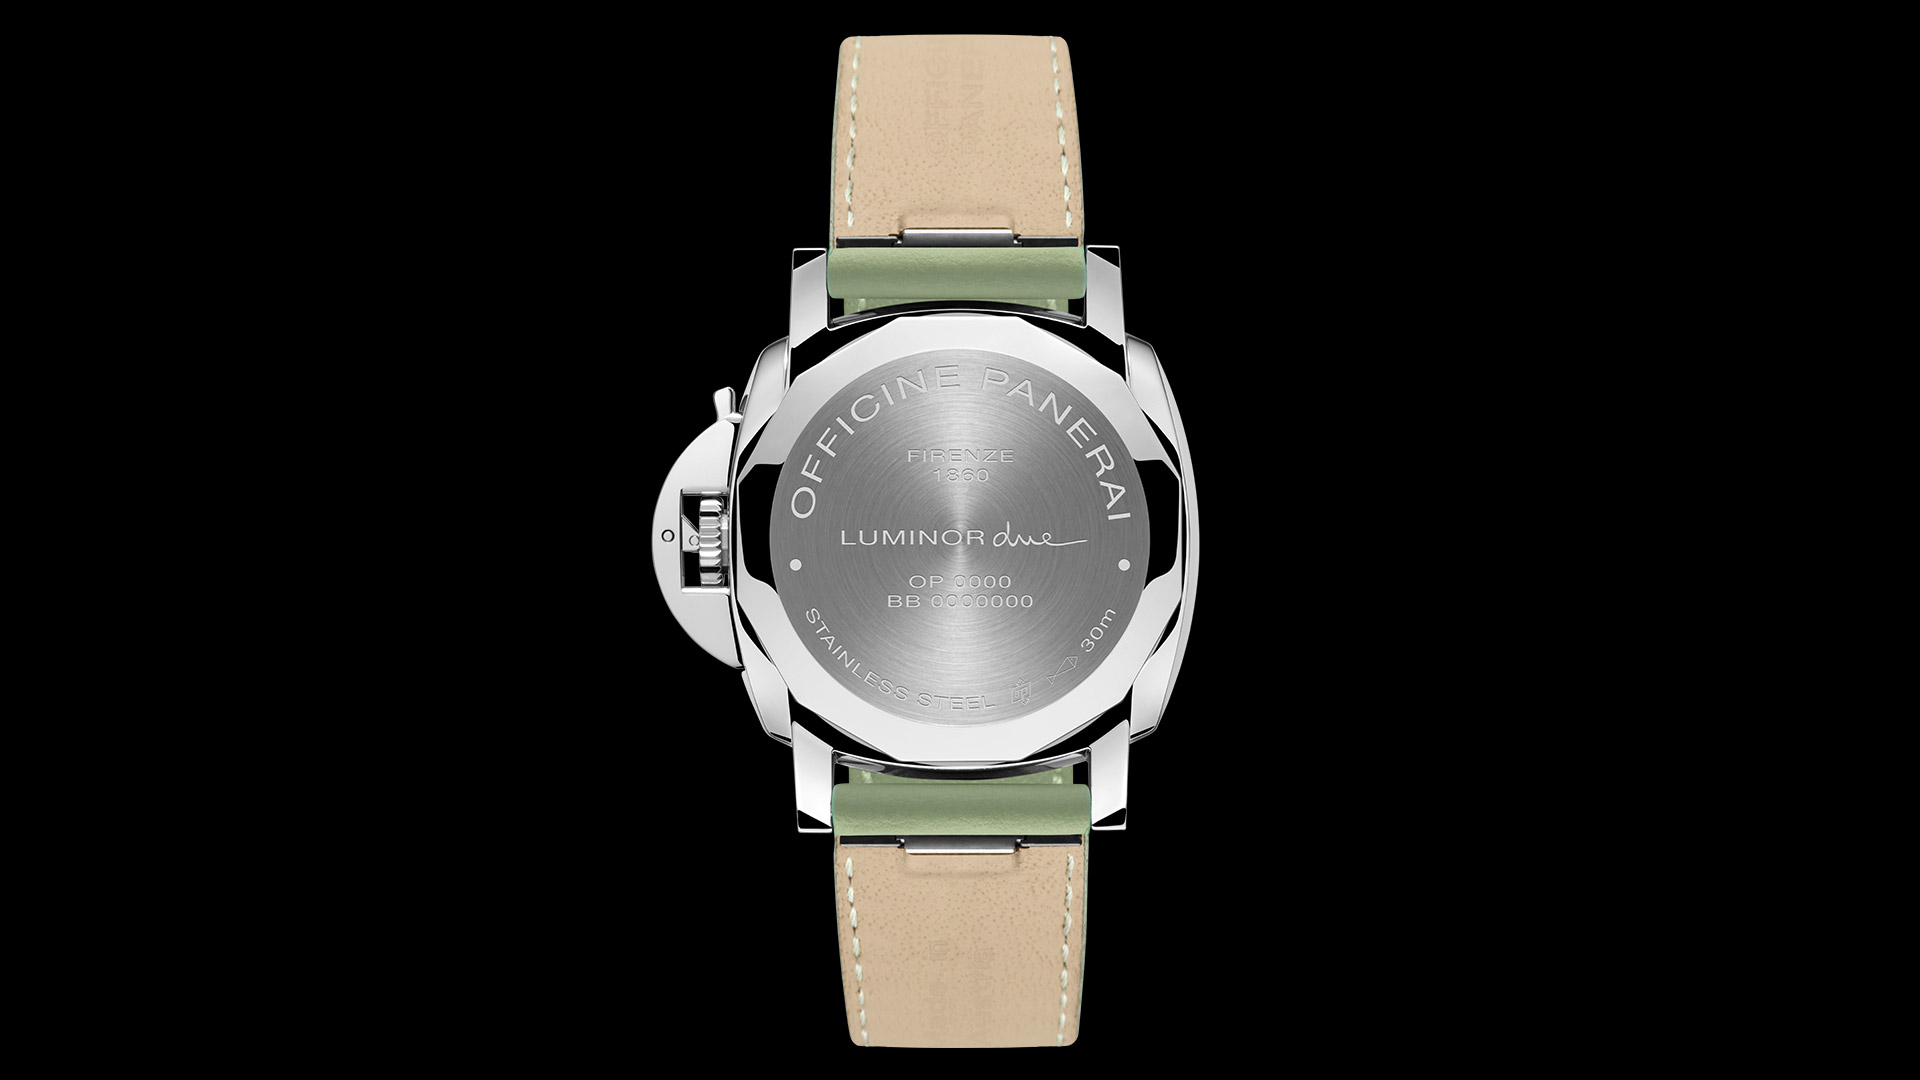 PANERAI LUMINOR DUE 3 DAYS AUTOMATIC ACCIAIO - 38 ММ PAM00755